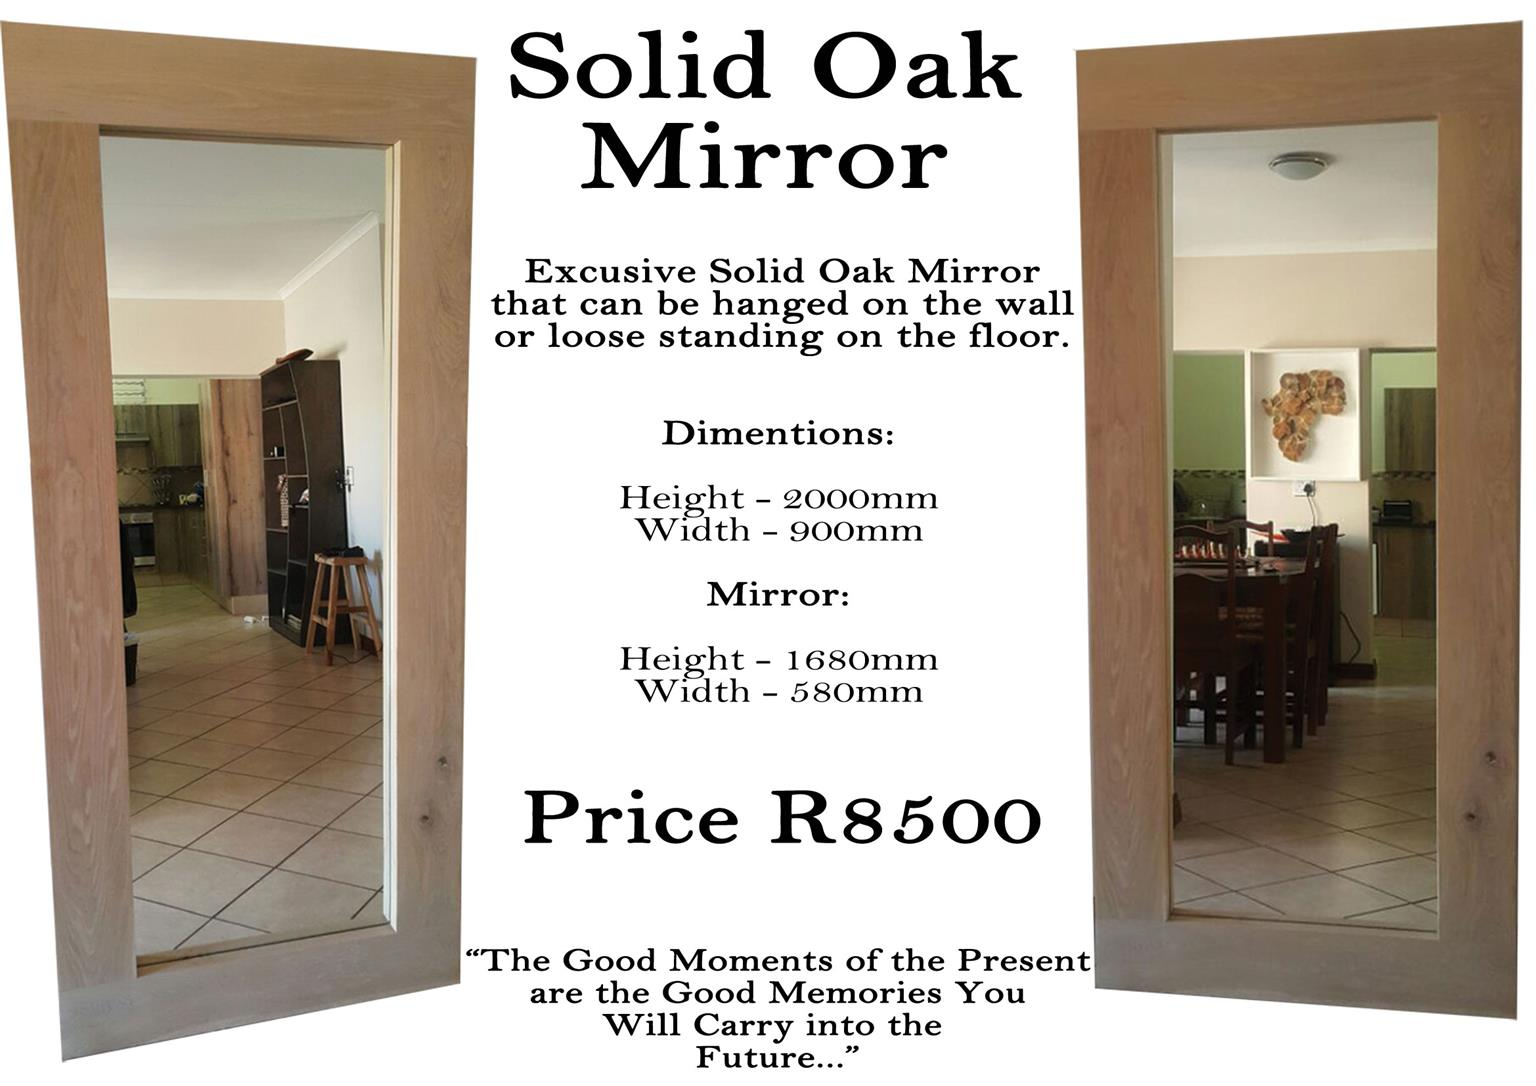 Solid oak mirror.